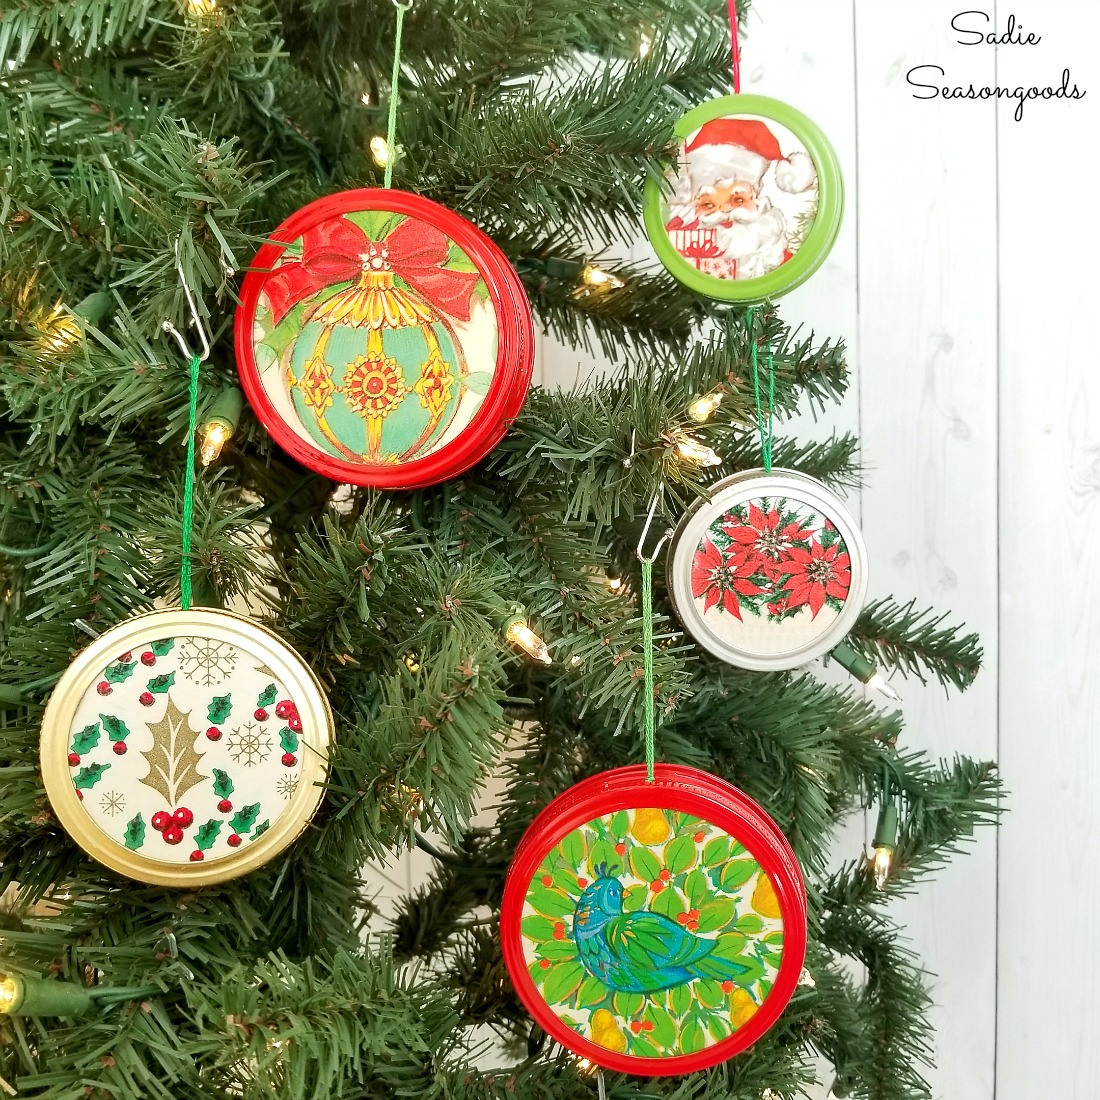 Retro Christmas.Retro Christmas Ornaments From Canning Jar Lids And Vintage